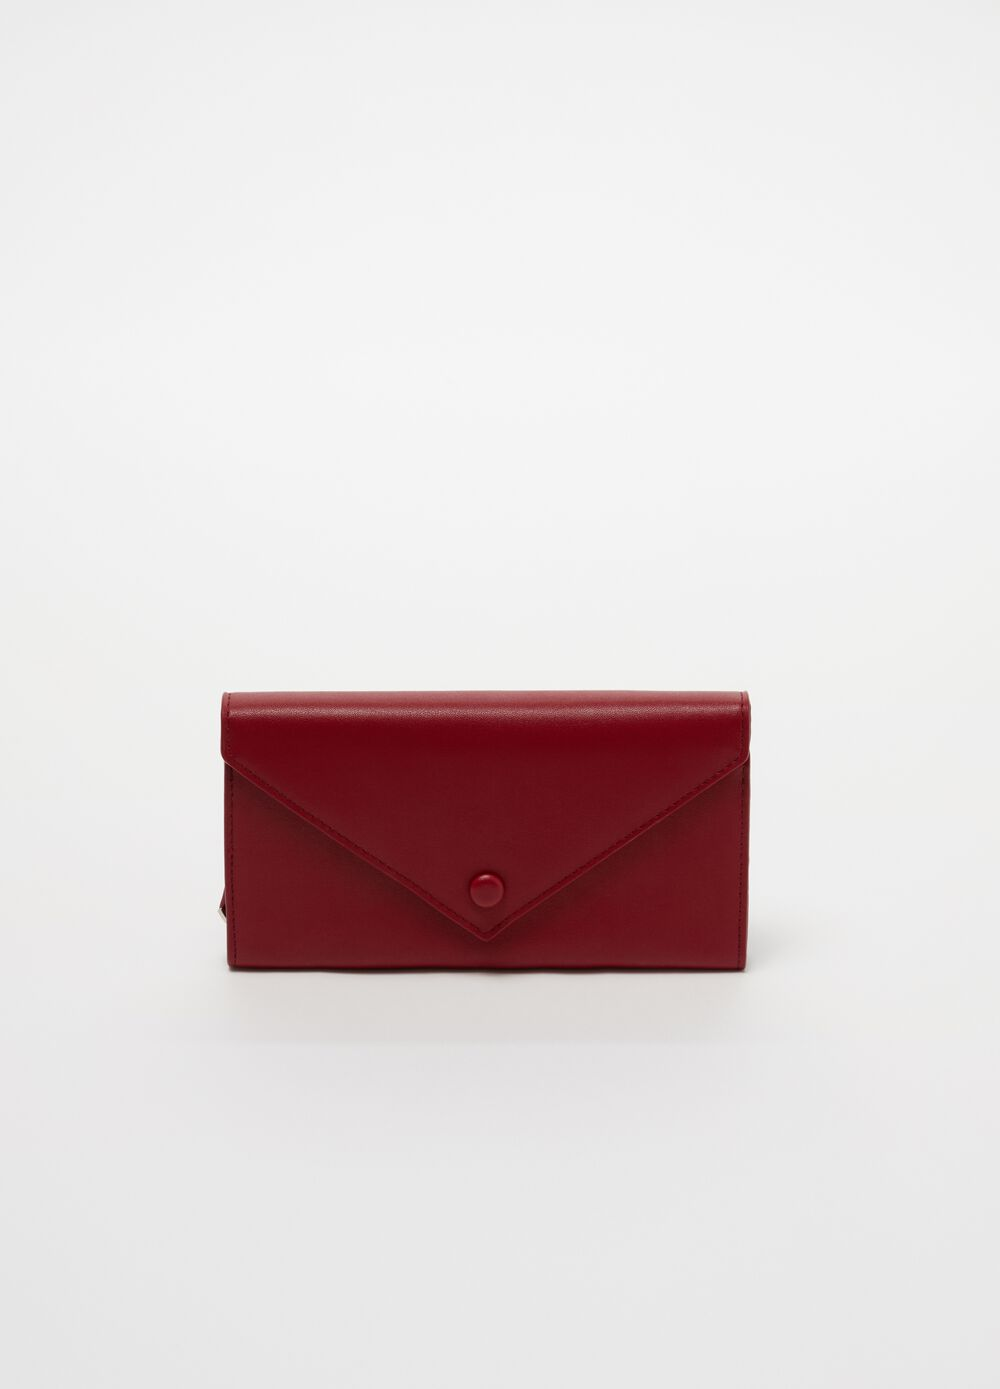 Leather-look wallet with flap